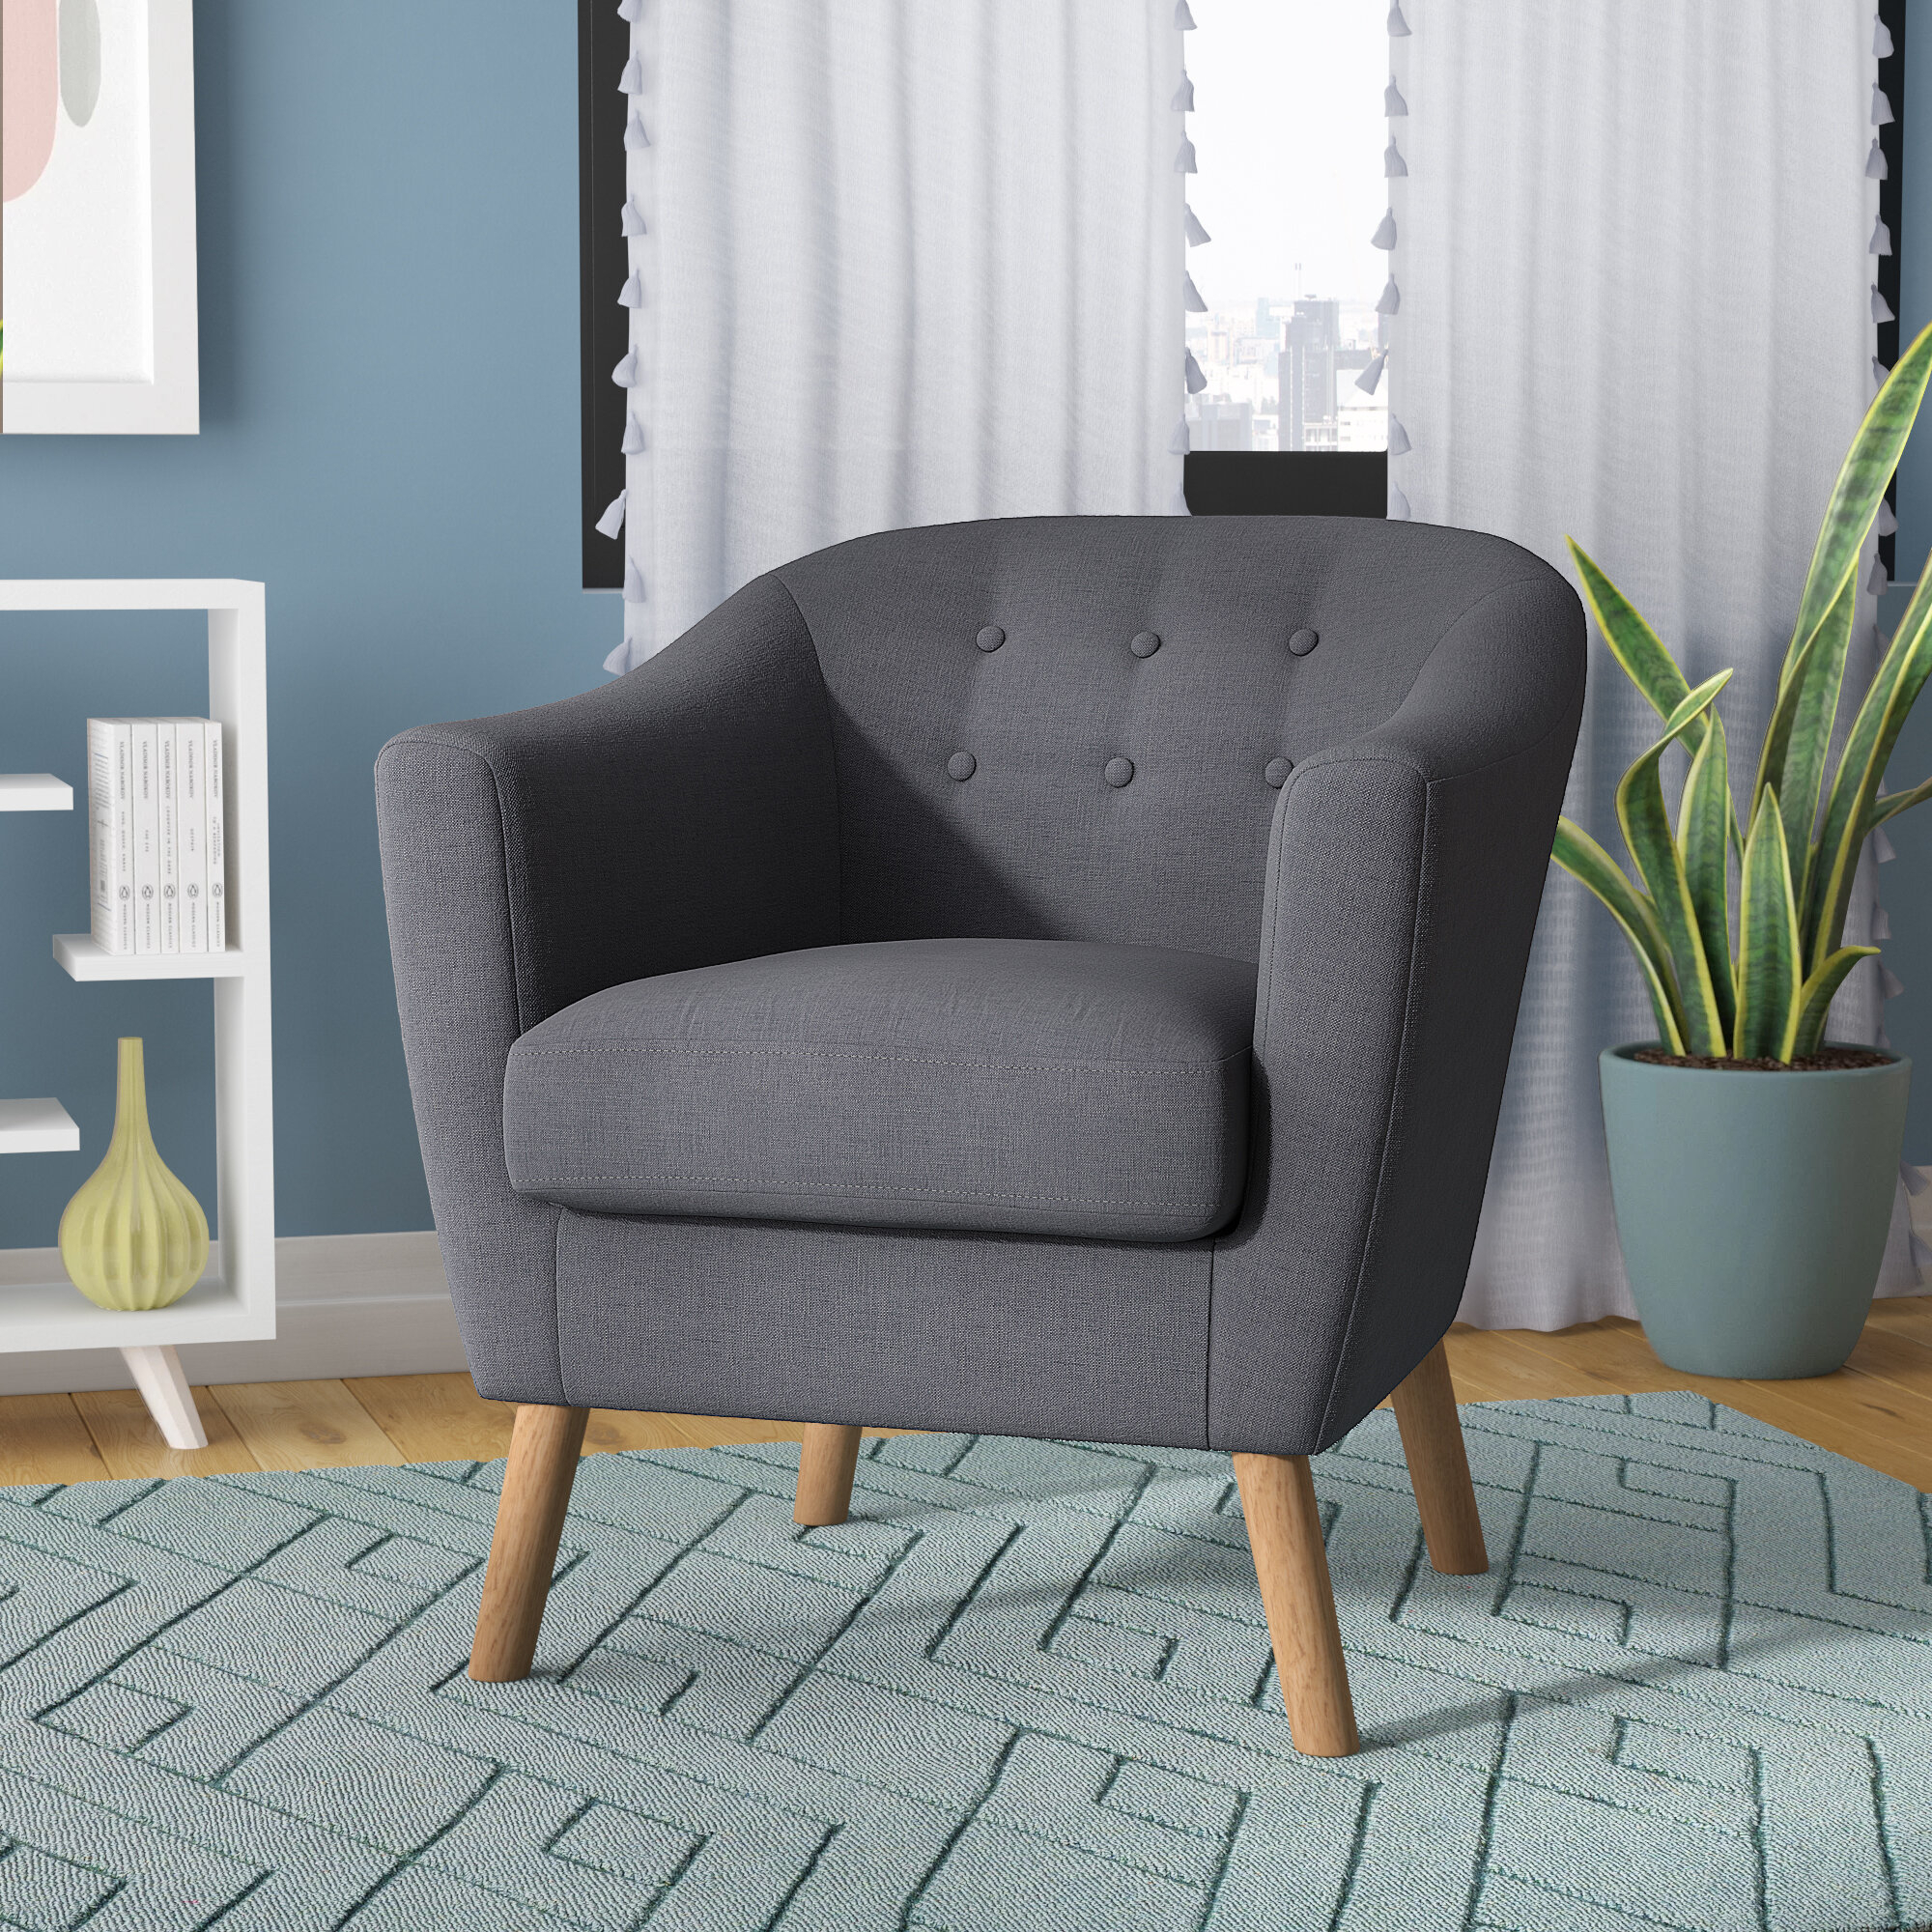 Barrel Linen Accent Chairs You'Ll Love In 2021 | Wayfair Intended For Blaithin Simple Single Barrel Chairs (View 3 of 15)